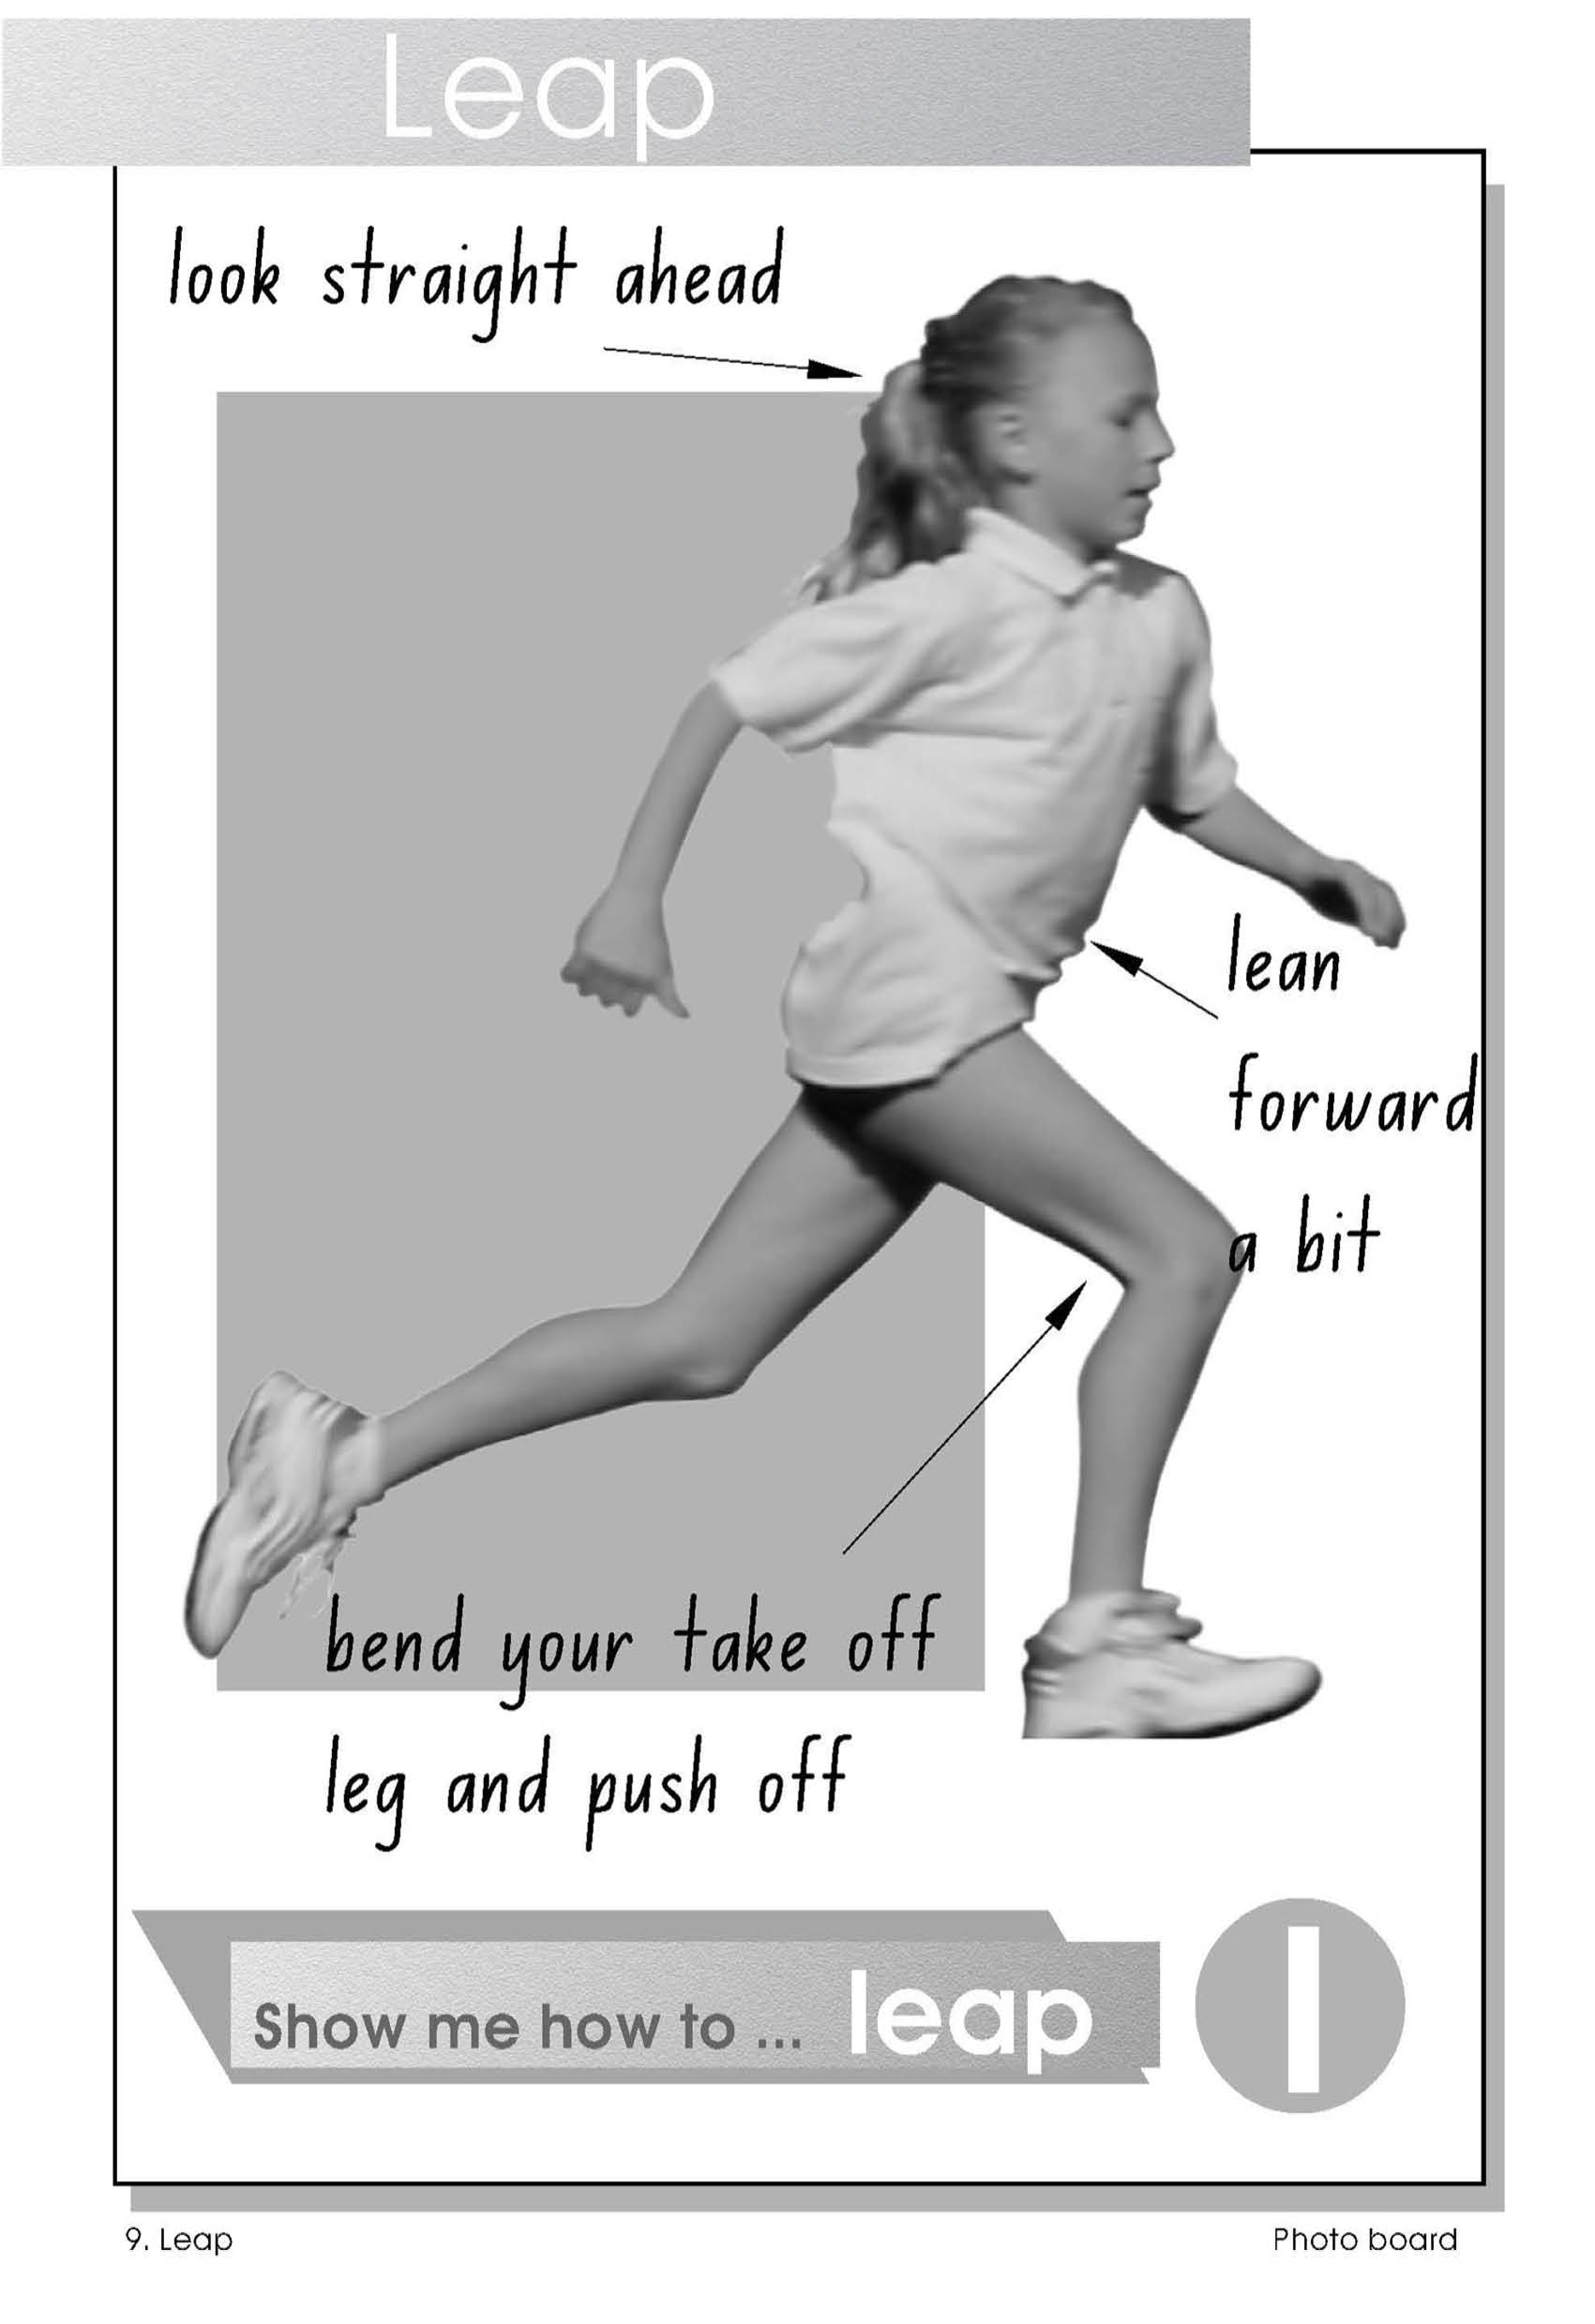 Observational poster - how to leap